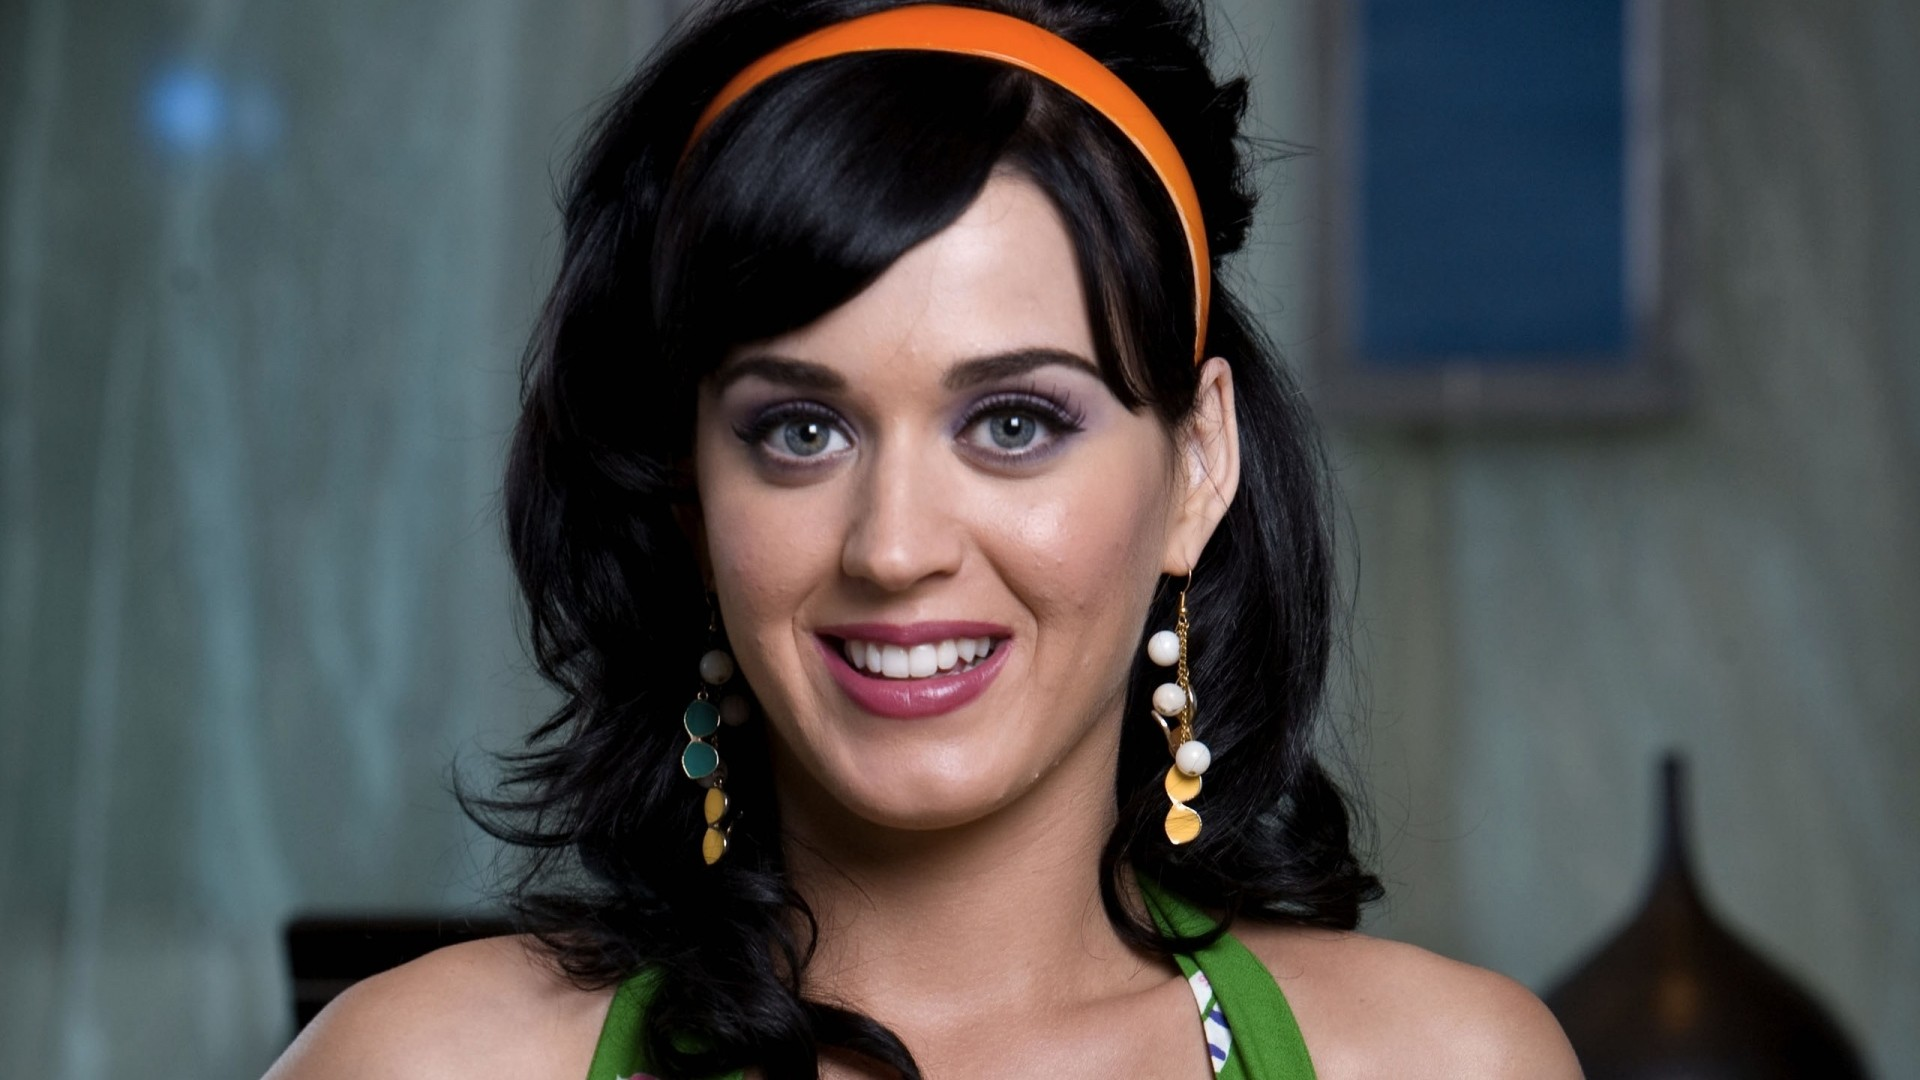 Wallpaper katy perry, smile, jewerly, make-up, haircut